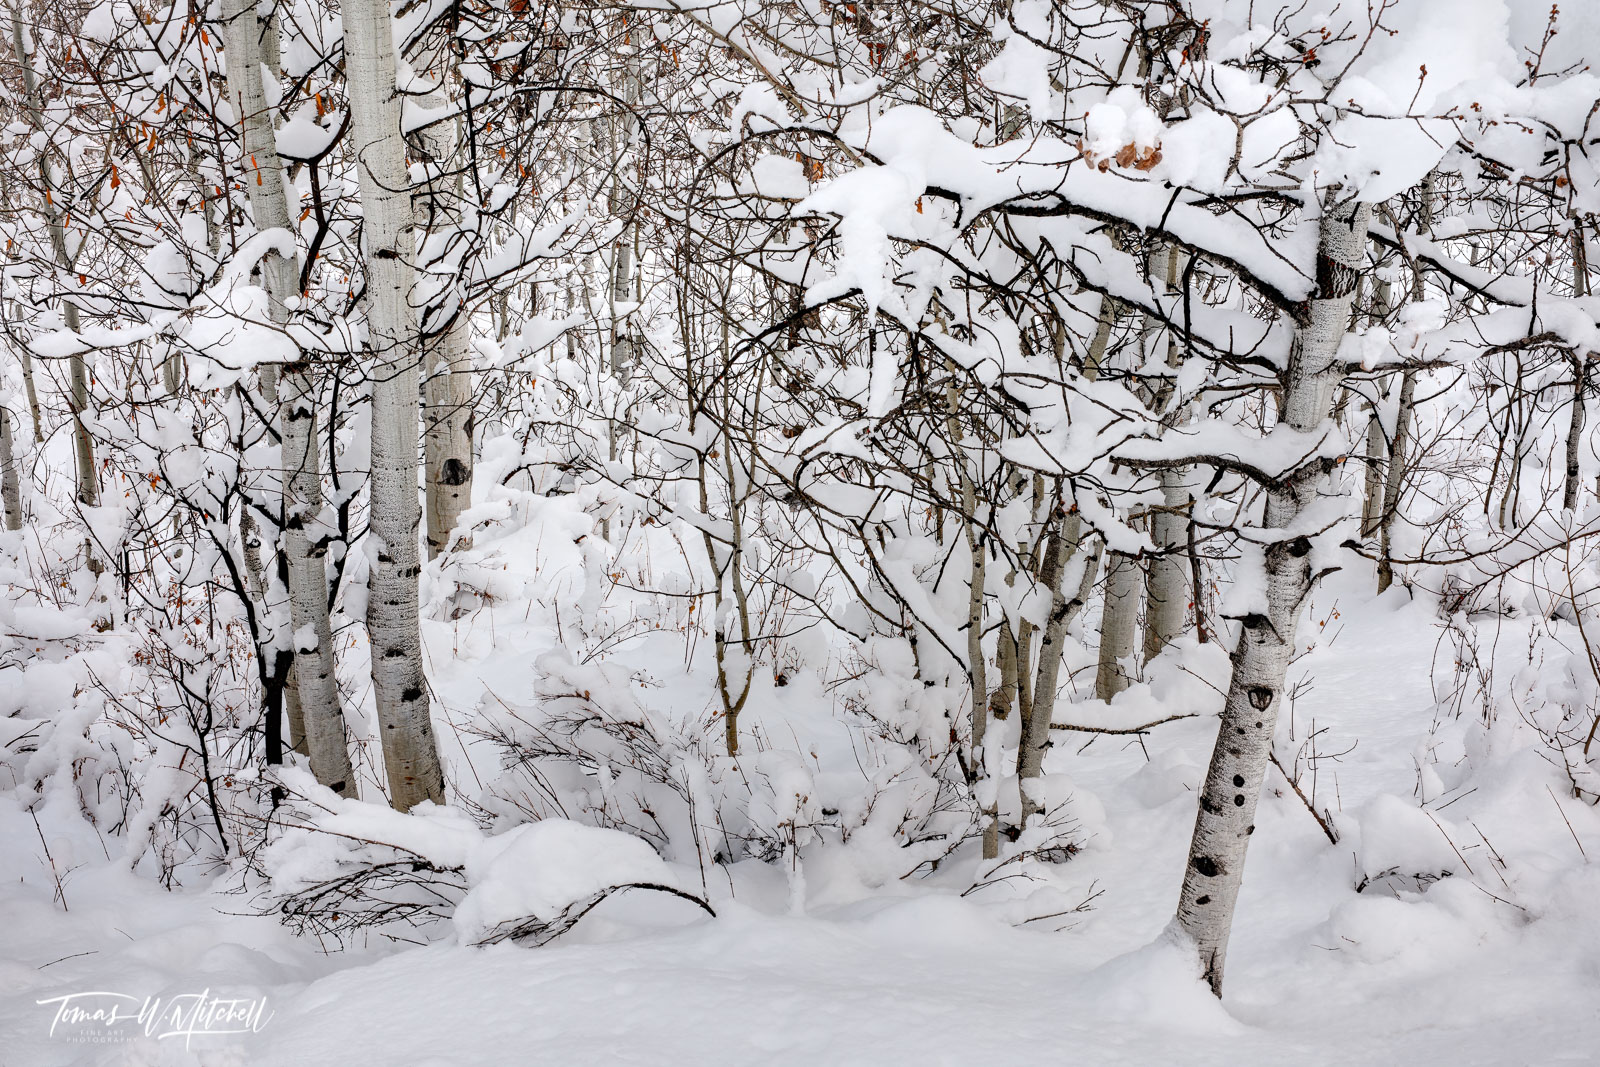 Limited Edition of 50 Museum Grade, Fine Art Prints. I love seeing trees covered in a blanket of snow, aspens are my favorite...